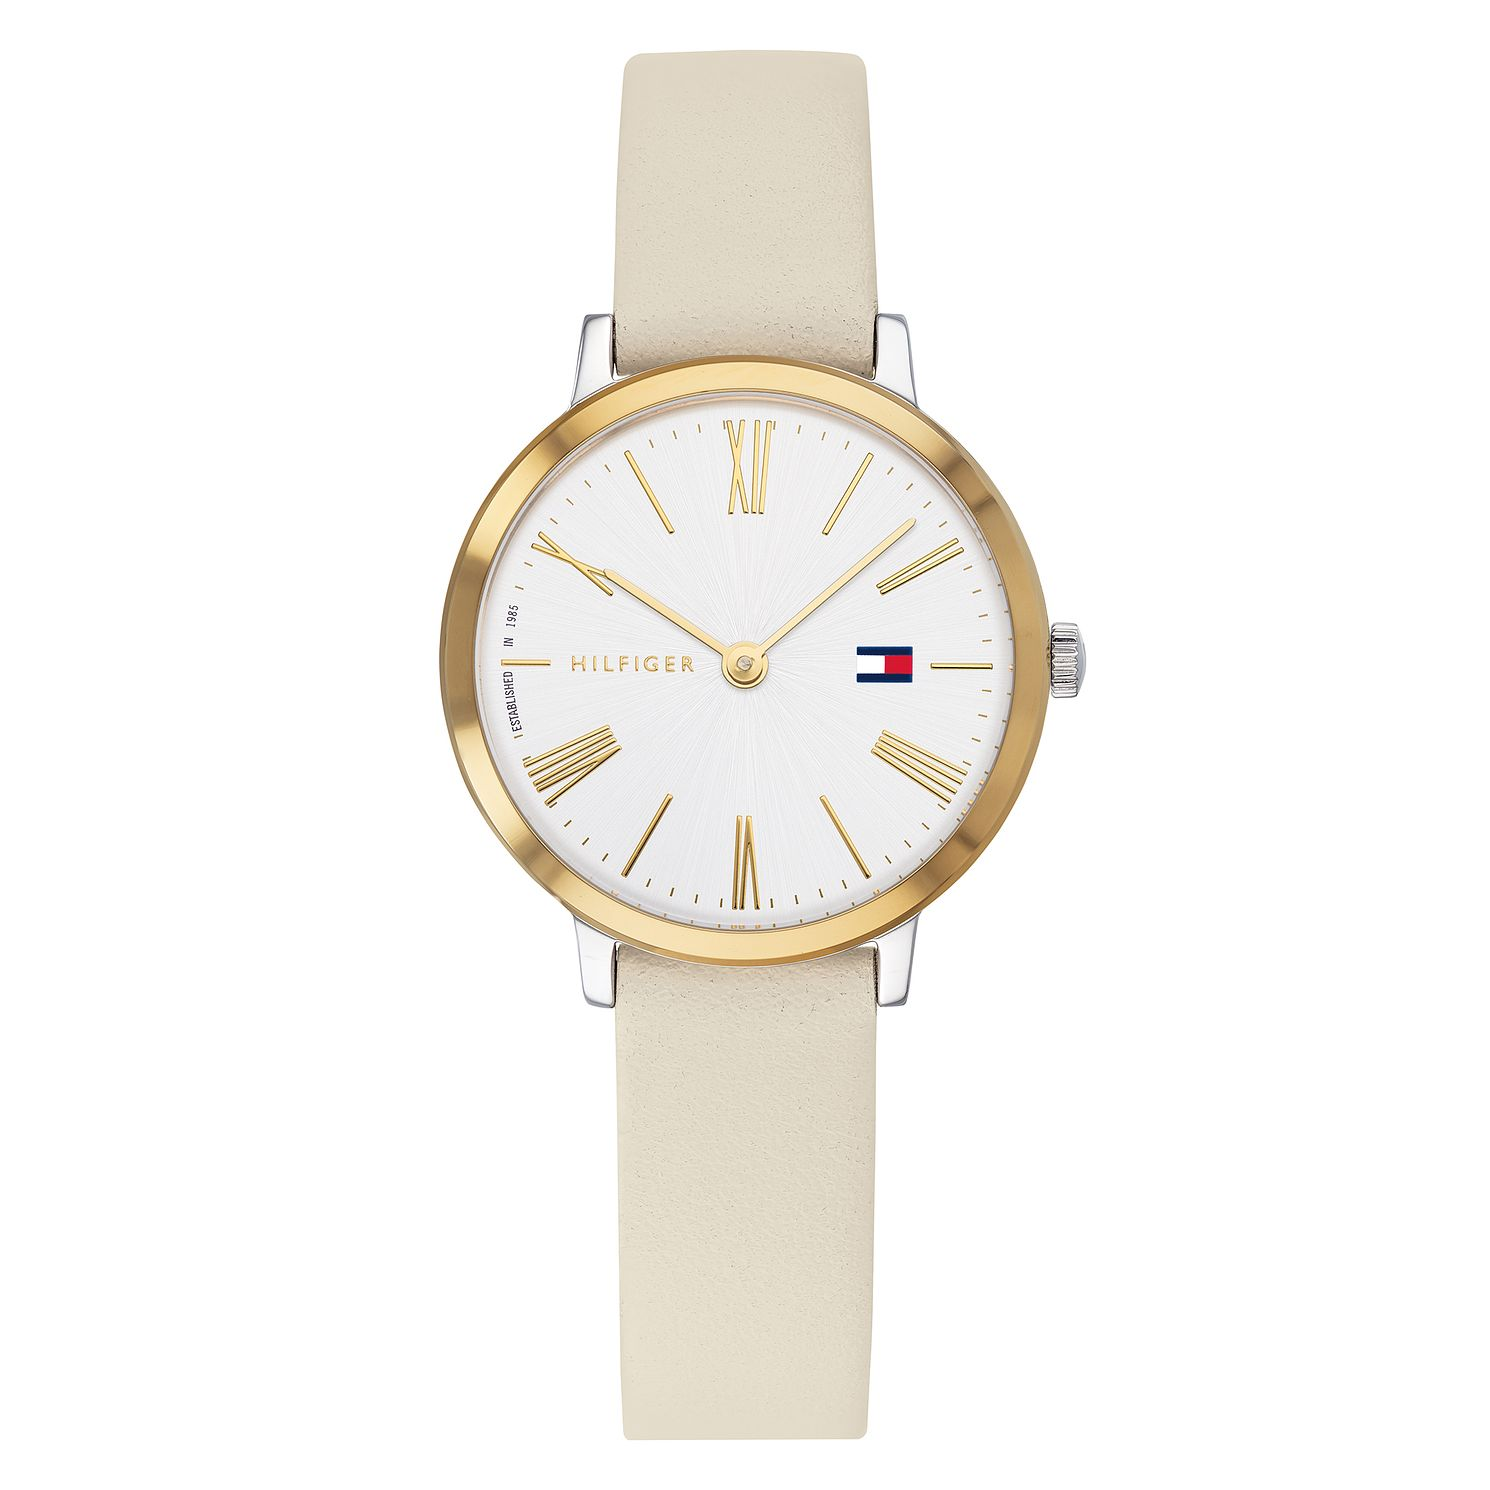 Tommy Hilfiger Project Z Ladies' Cream Leather Strap Watch - Product number 3175715